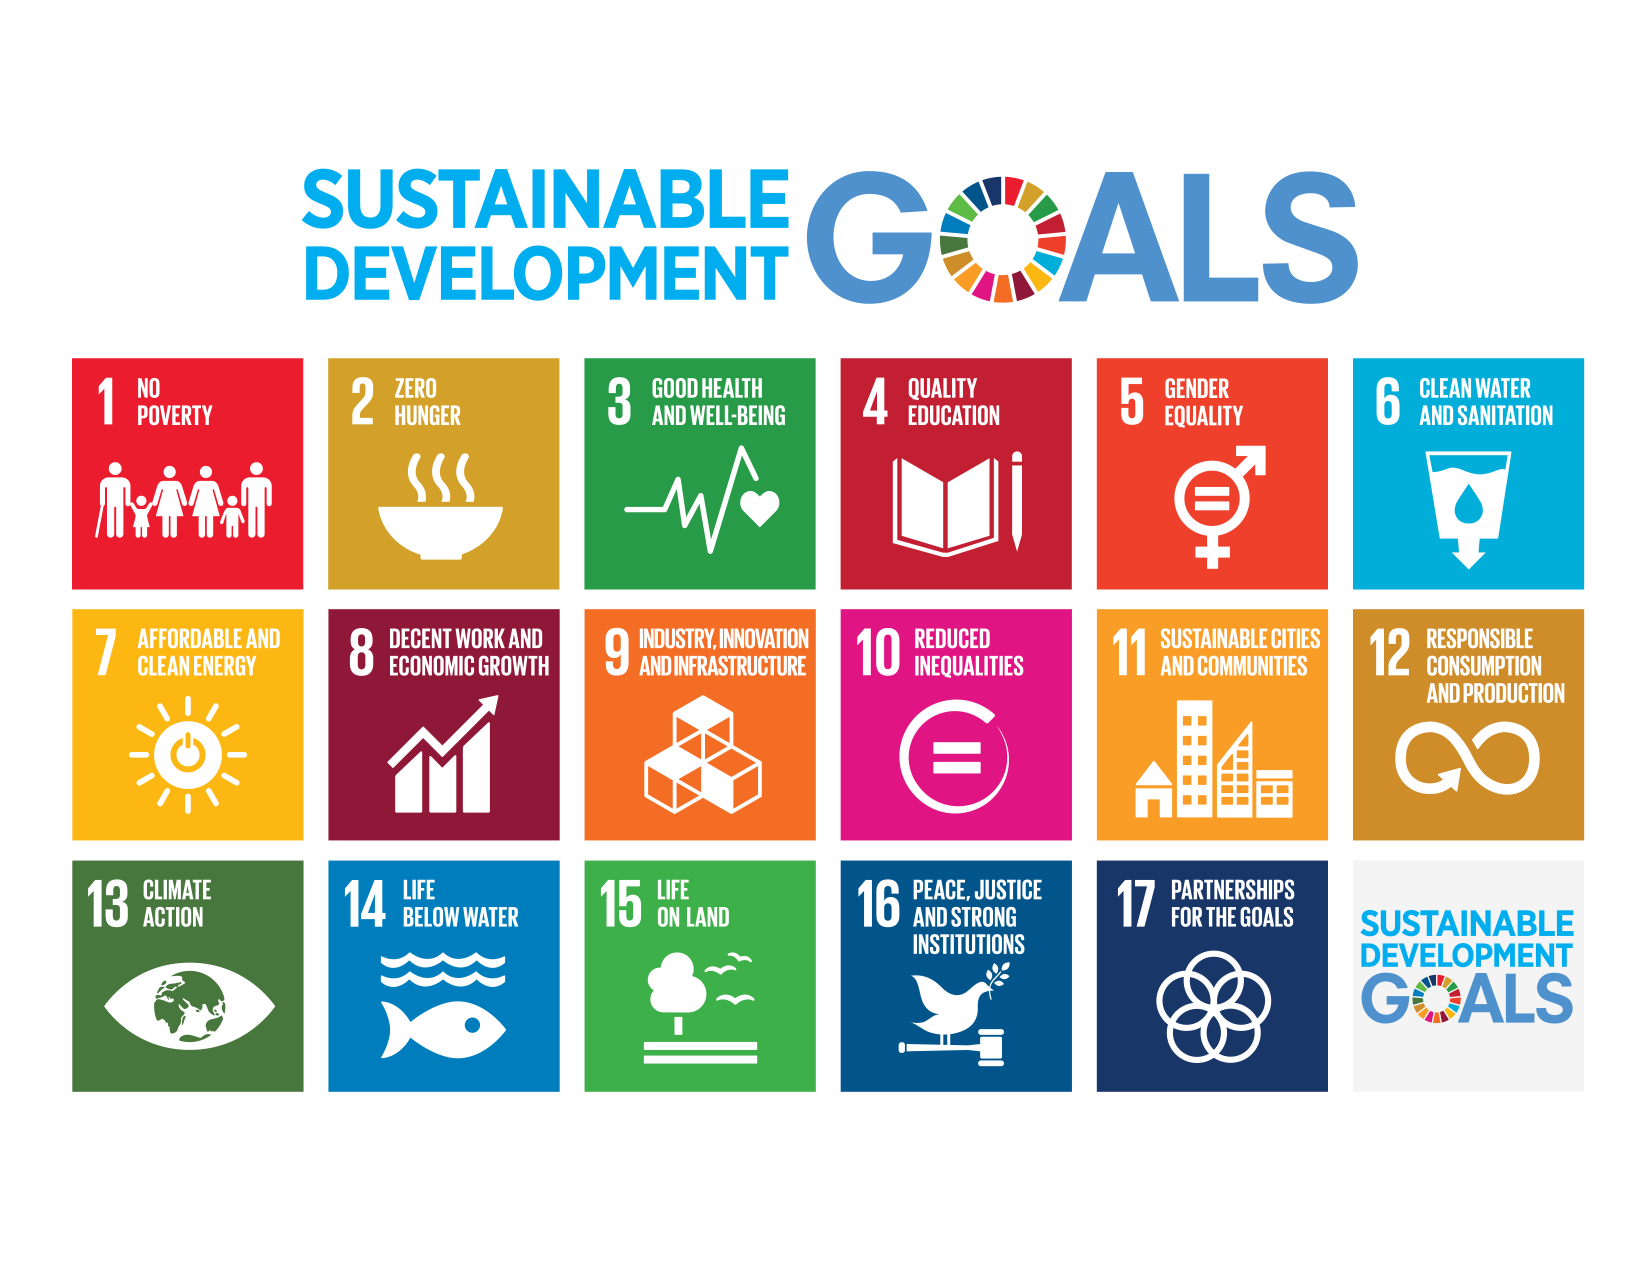 Sustainable Development Goals logo and icons. ODI supports the SDGs.